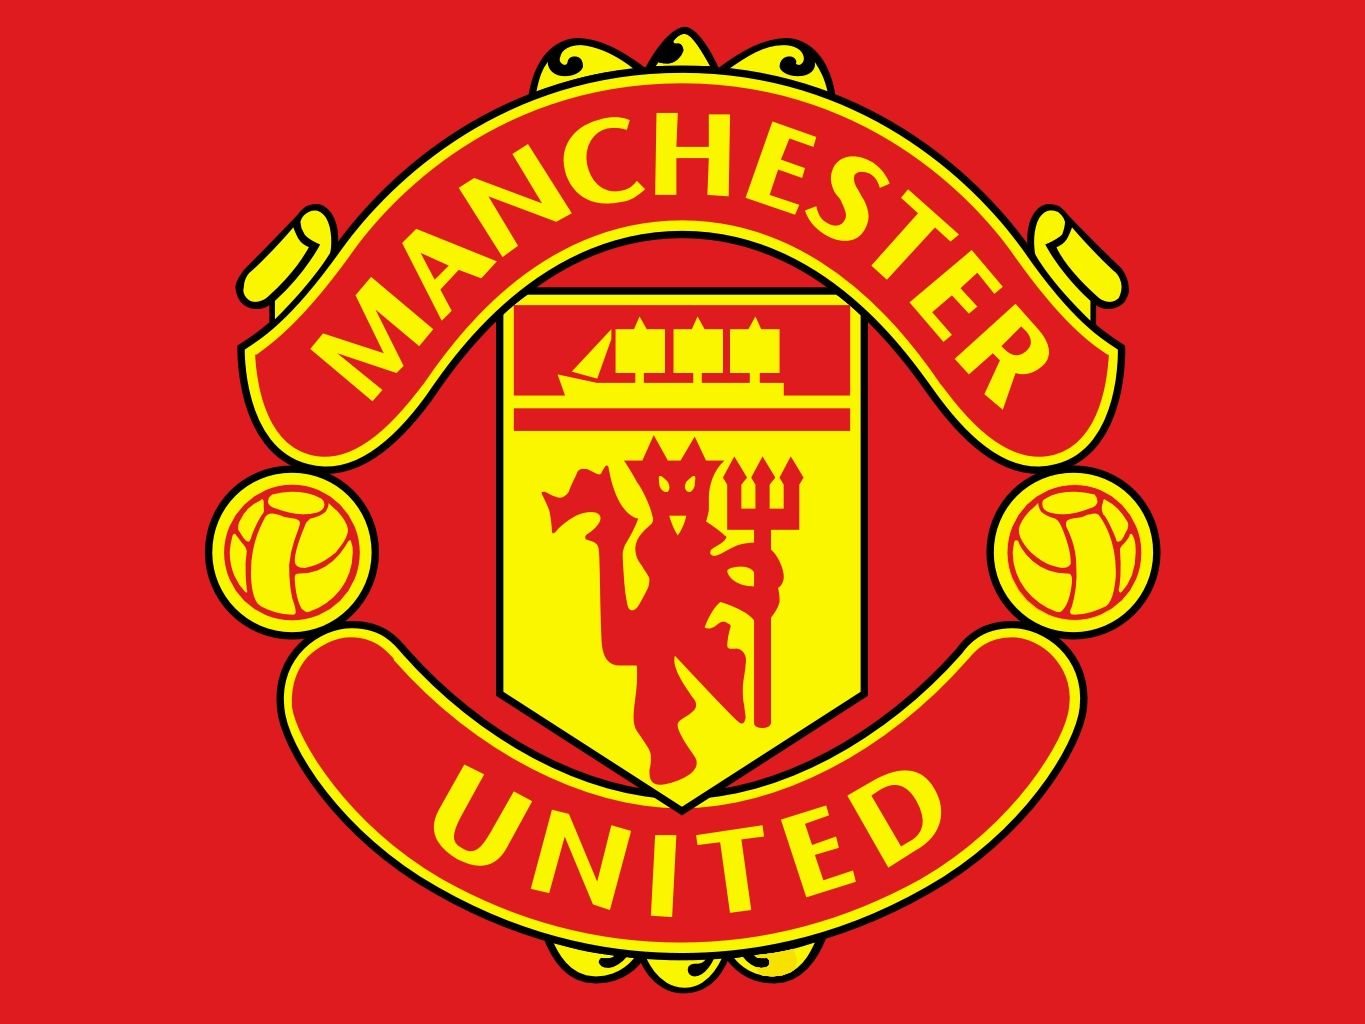 Color of the Manchester United Logo   Manchester united logo, Manchester united wallpaper, Manchester united